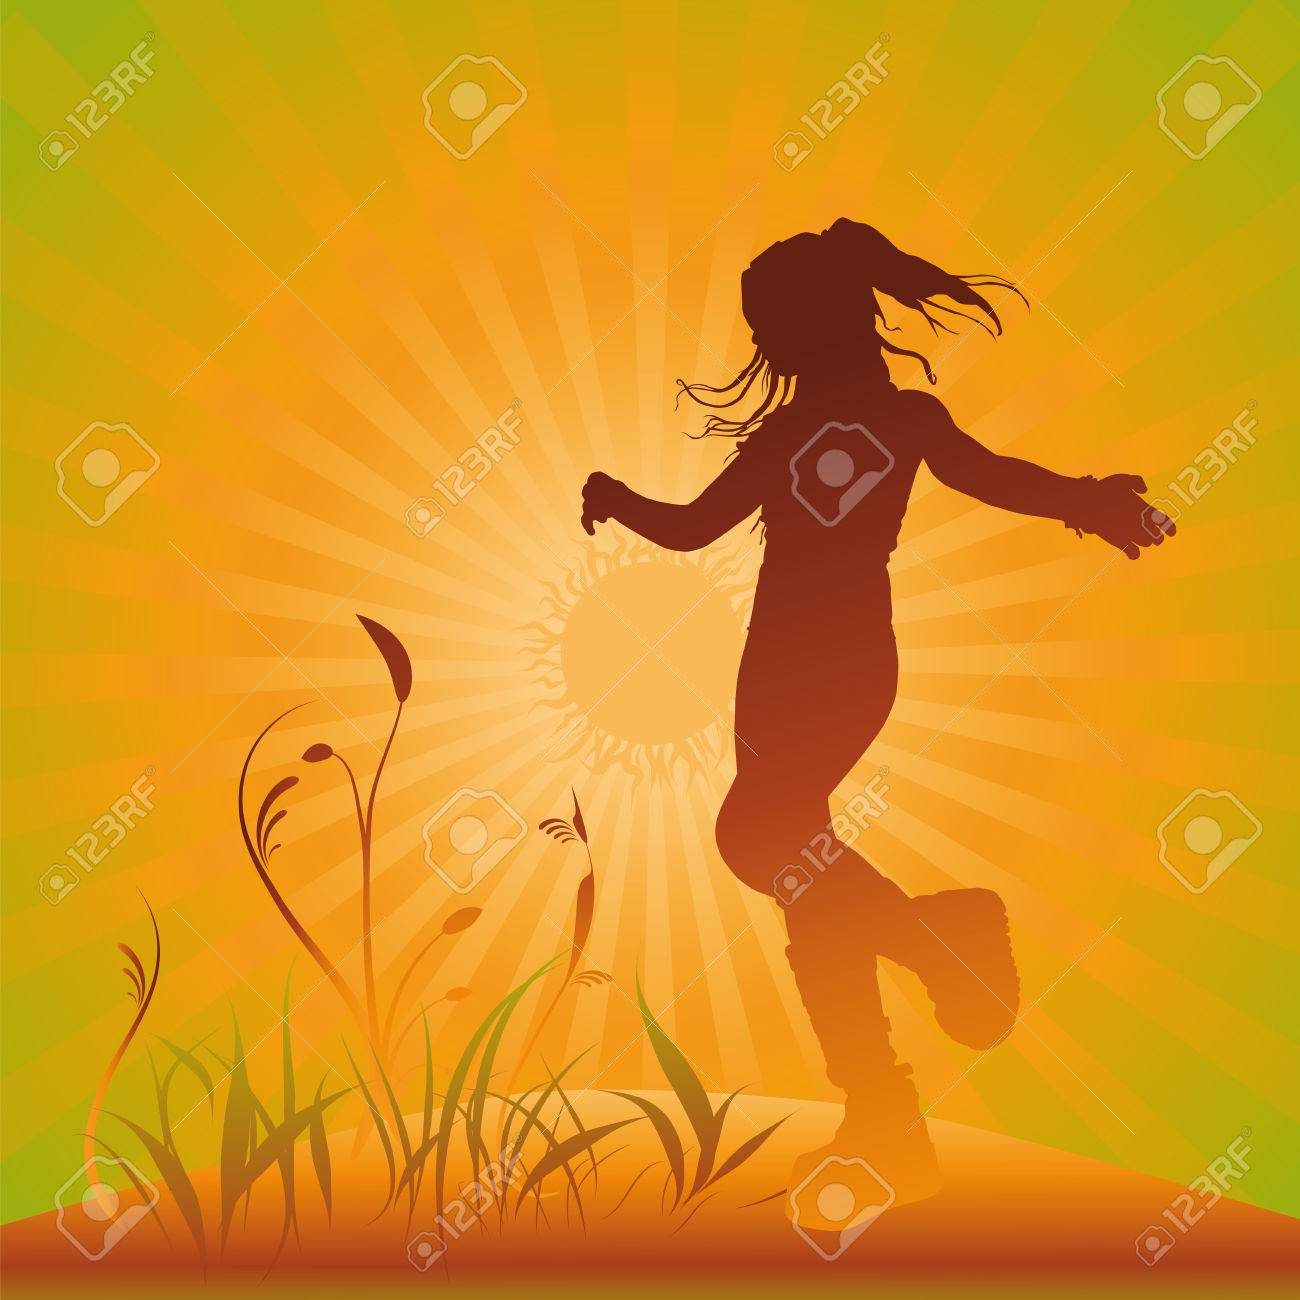 a girl dancing  in the sunset, illustration Stock Vector - 6858323